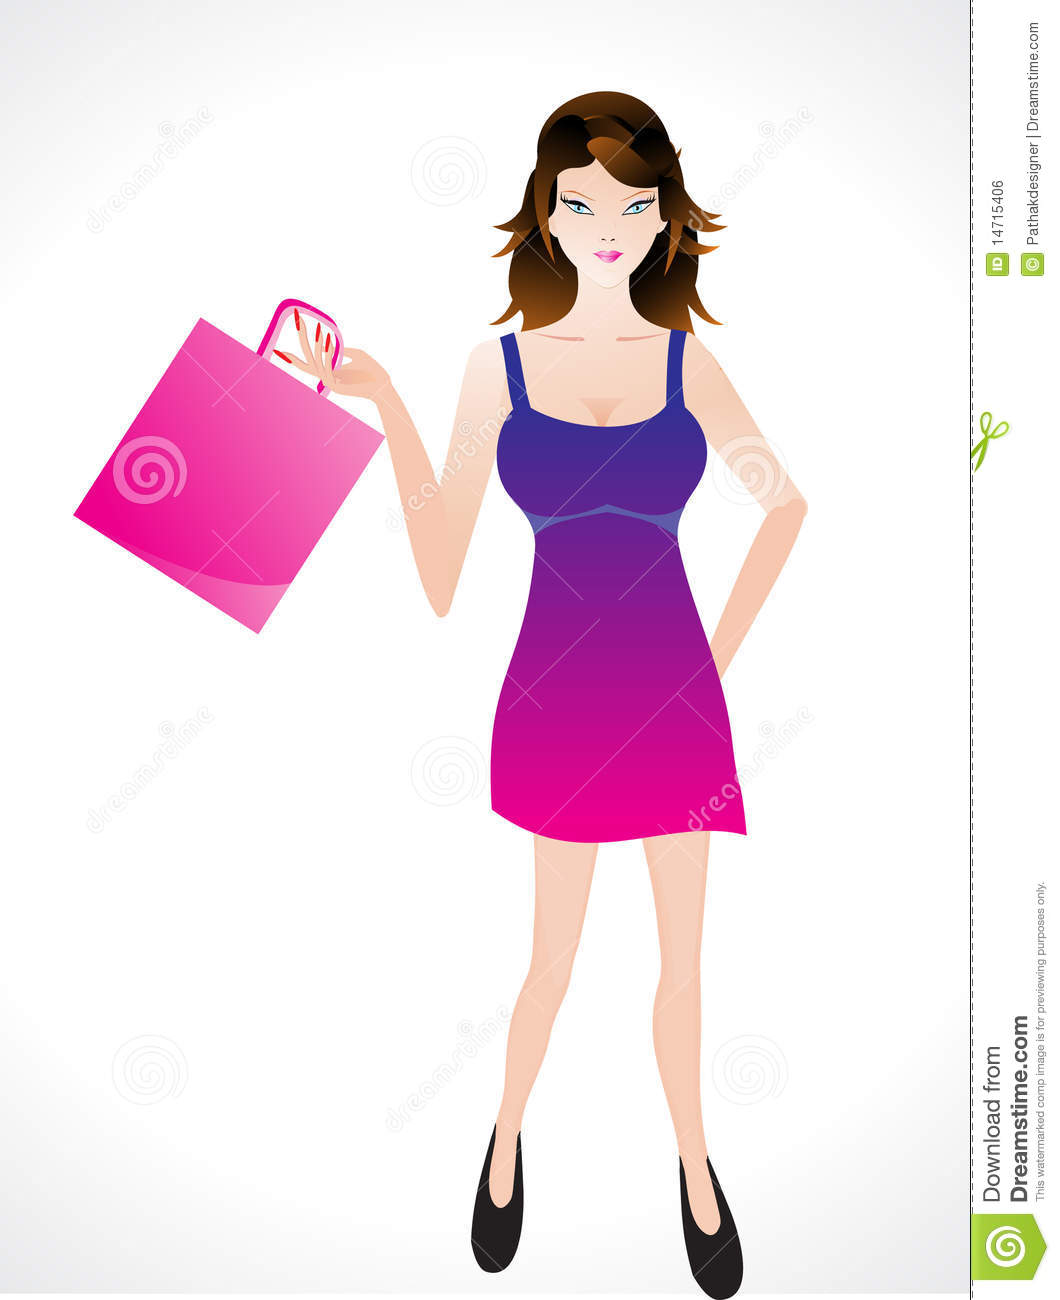 shopping - shoping Picture